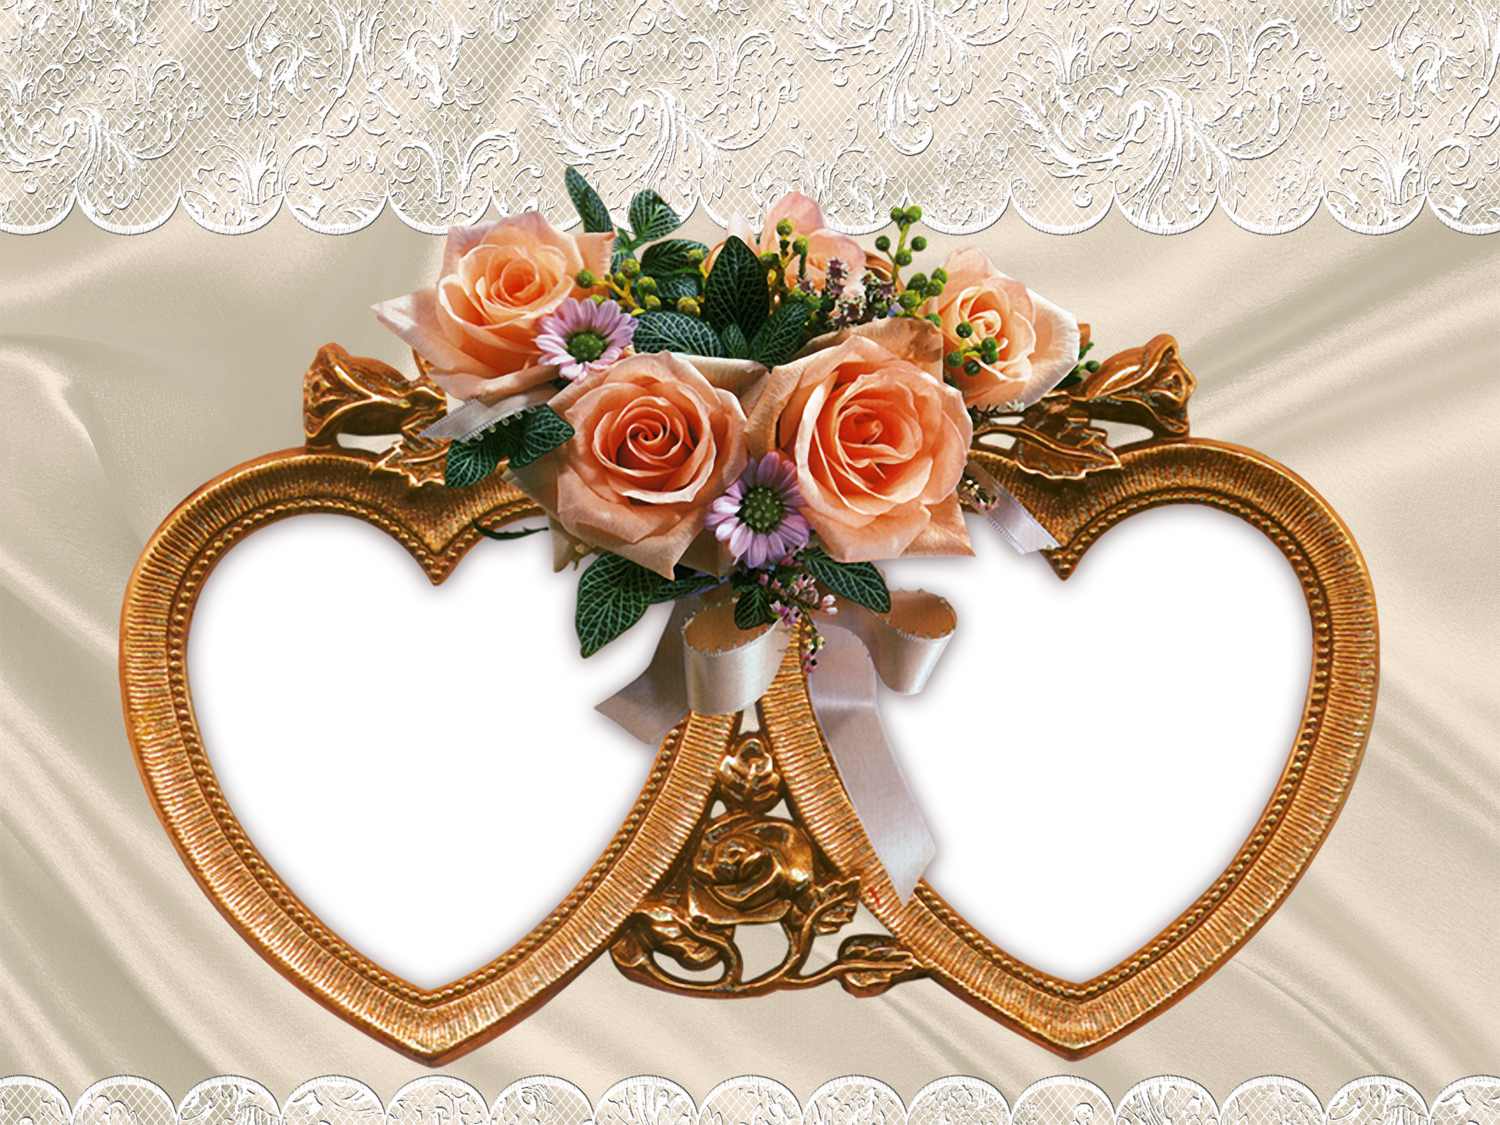 Wedding Picture Frames | Free Psd Wedding Frames For Photoshop Wedding Frames For Photoshop